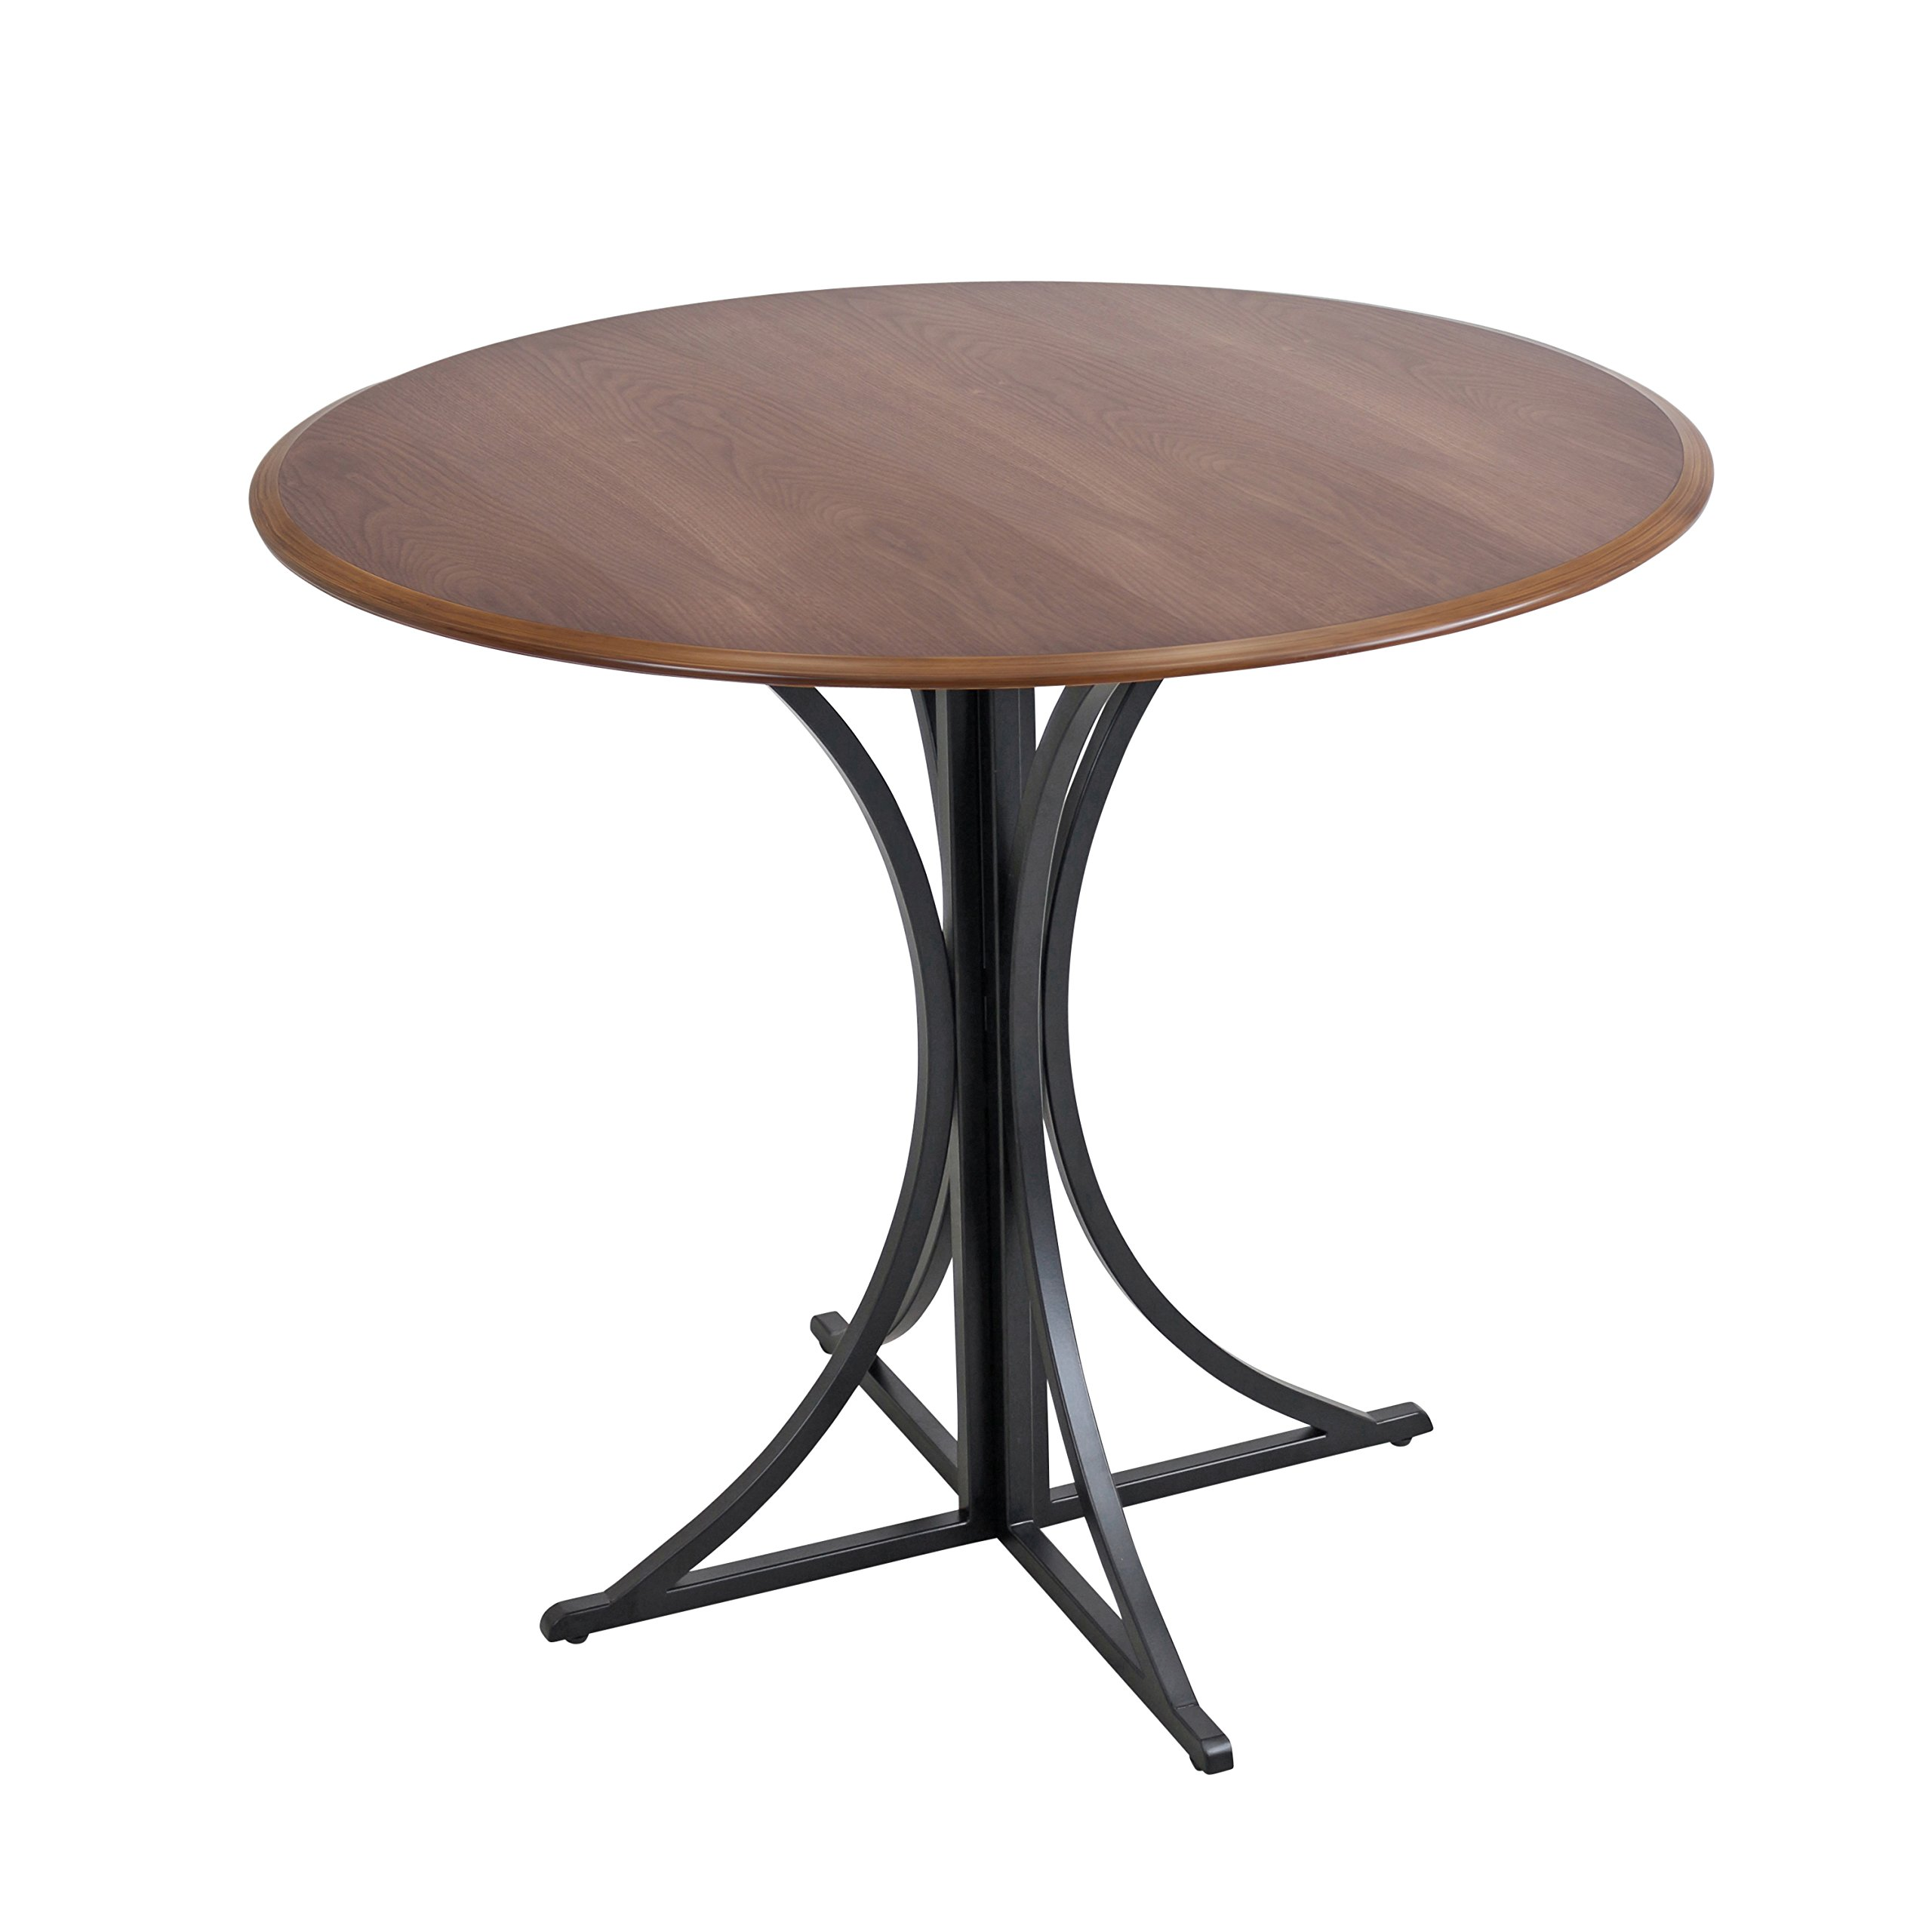 WOYBR DT WL+BK Wood, Metal Boro Dining Table